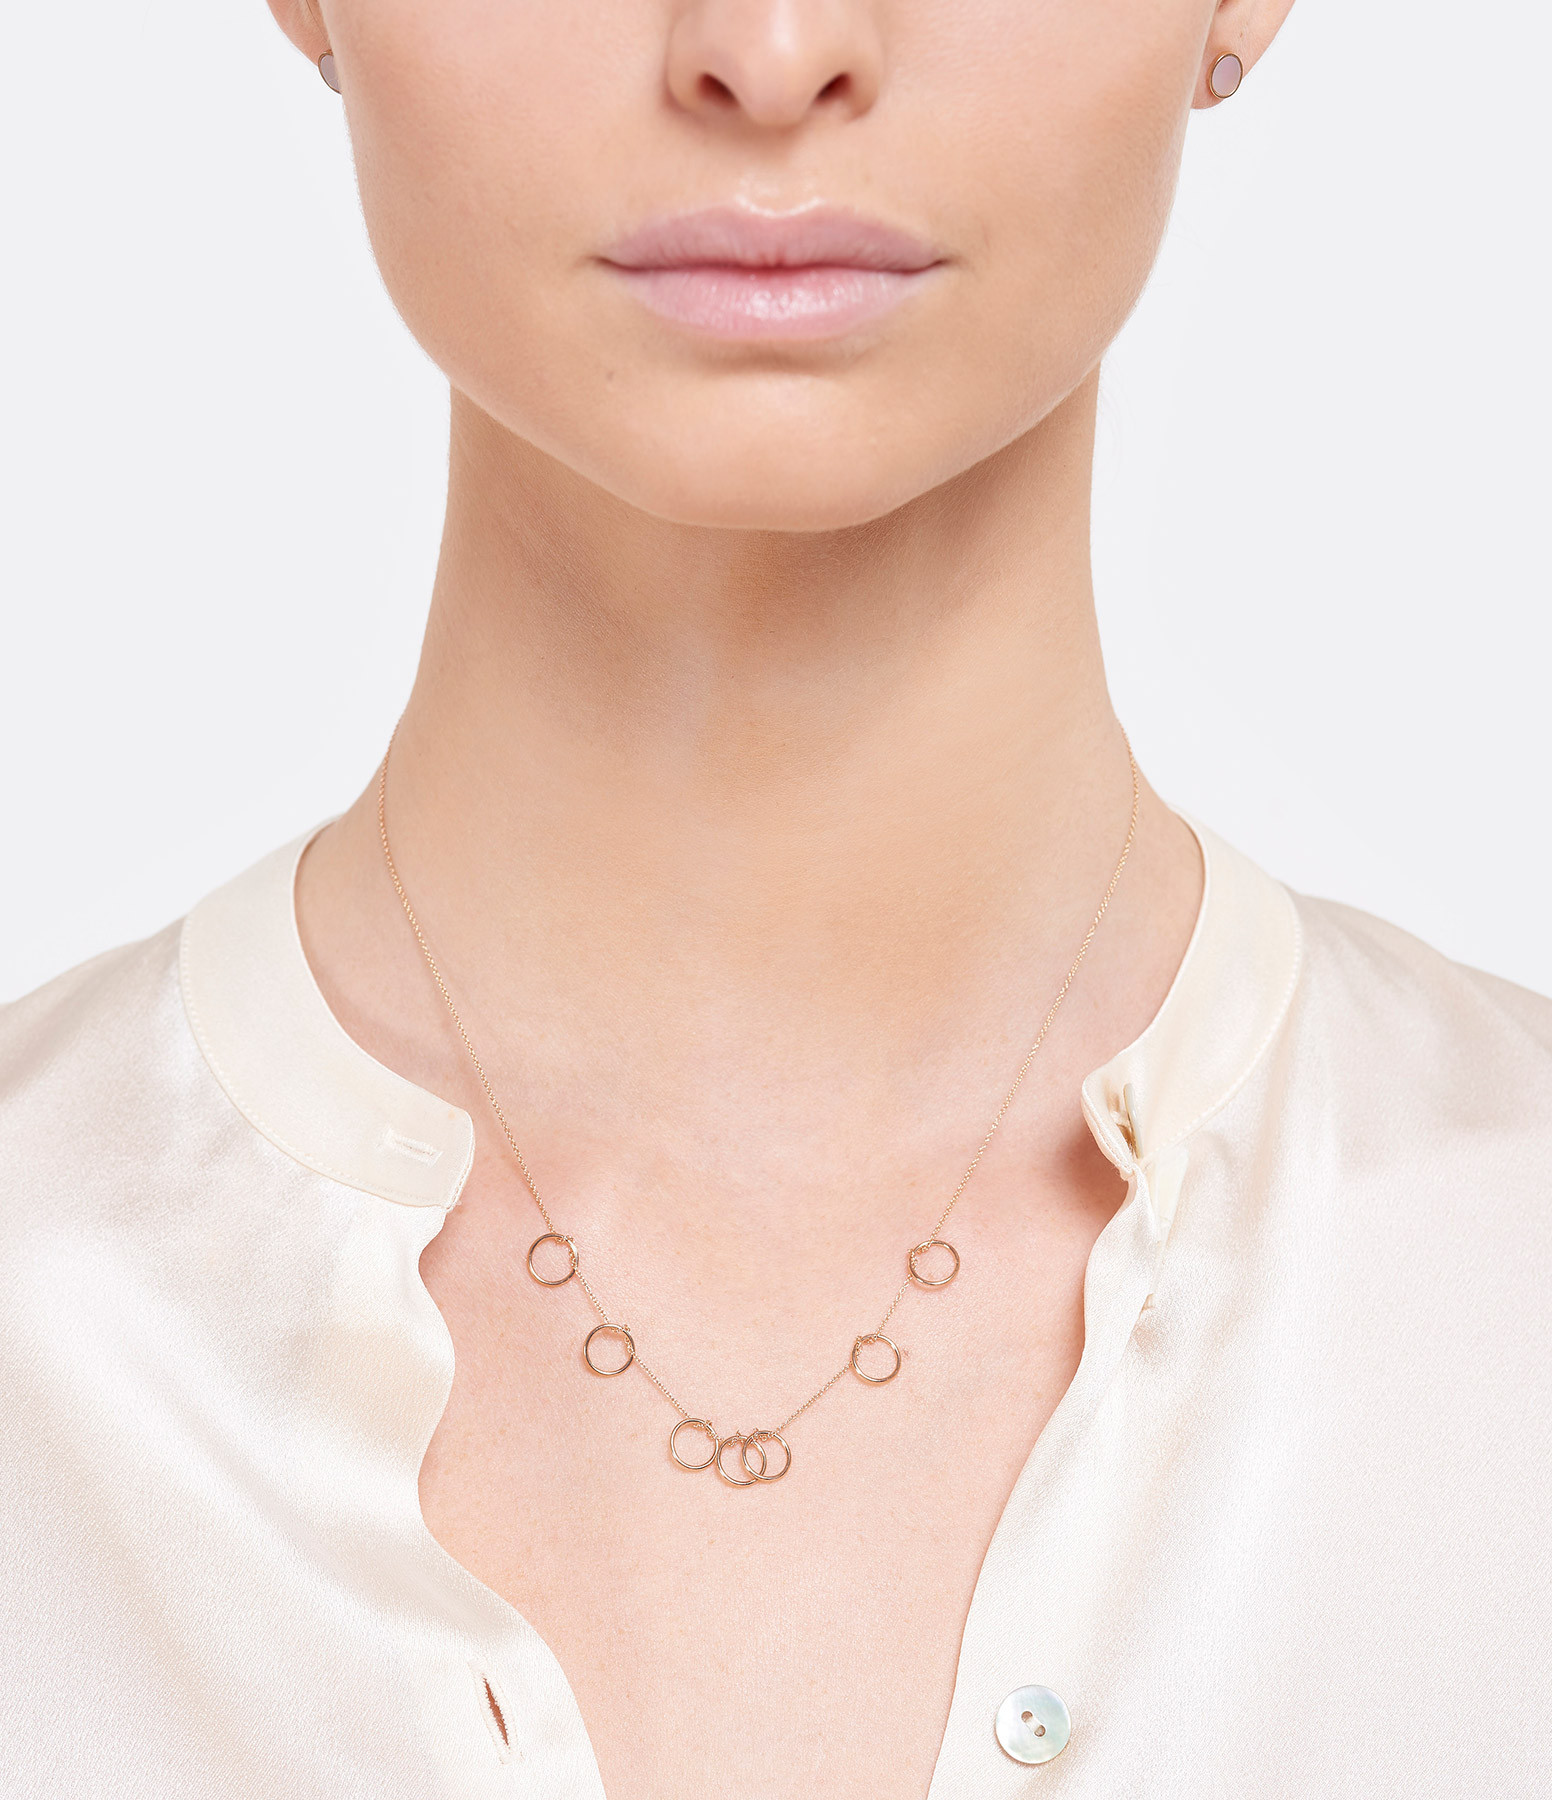 GINETTE NY - Collier Tiny 7 Cercles Or Rose